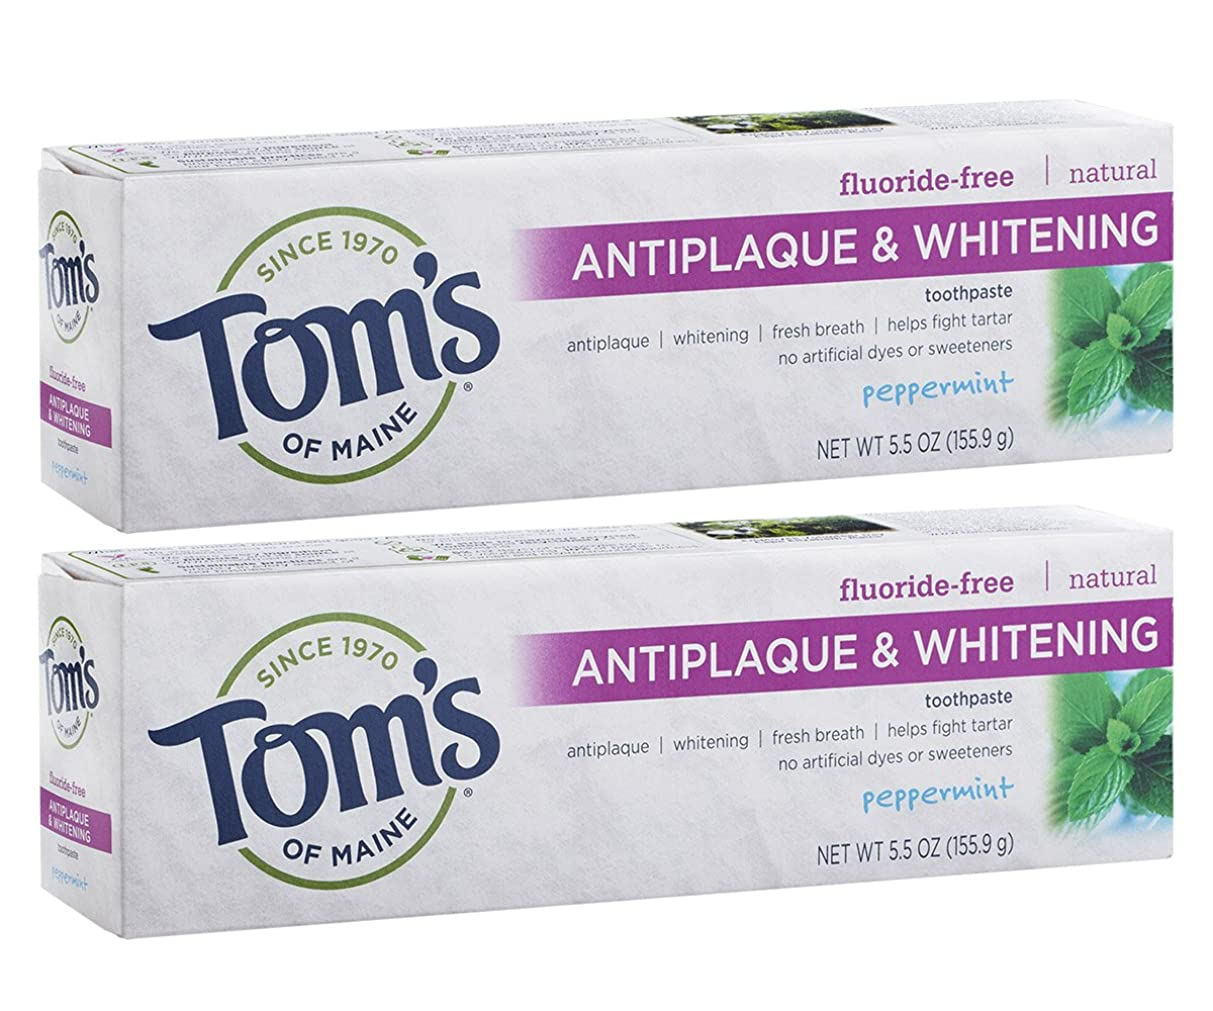 決めますおとうさん悪性のTom's of Maine Antiplaque And Whitening Fluoride-Free Toothpaste, Peppermint, 5.5-Ounce by Tom's of Maine